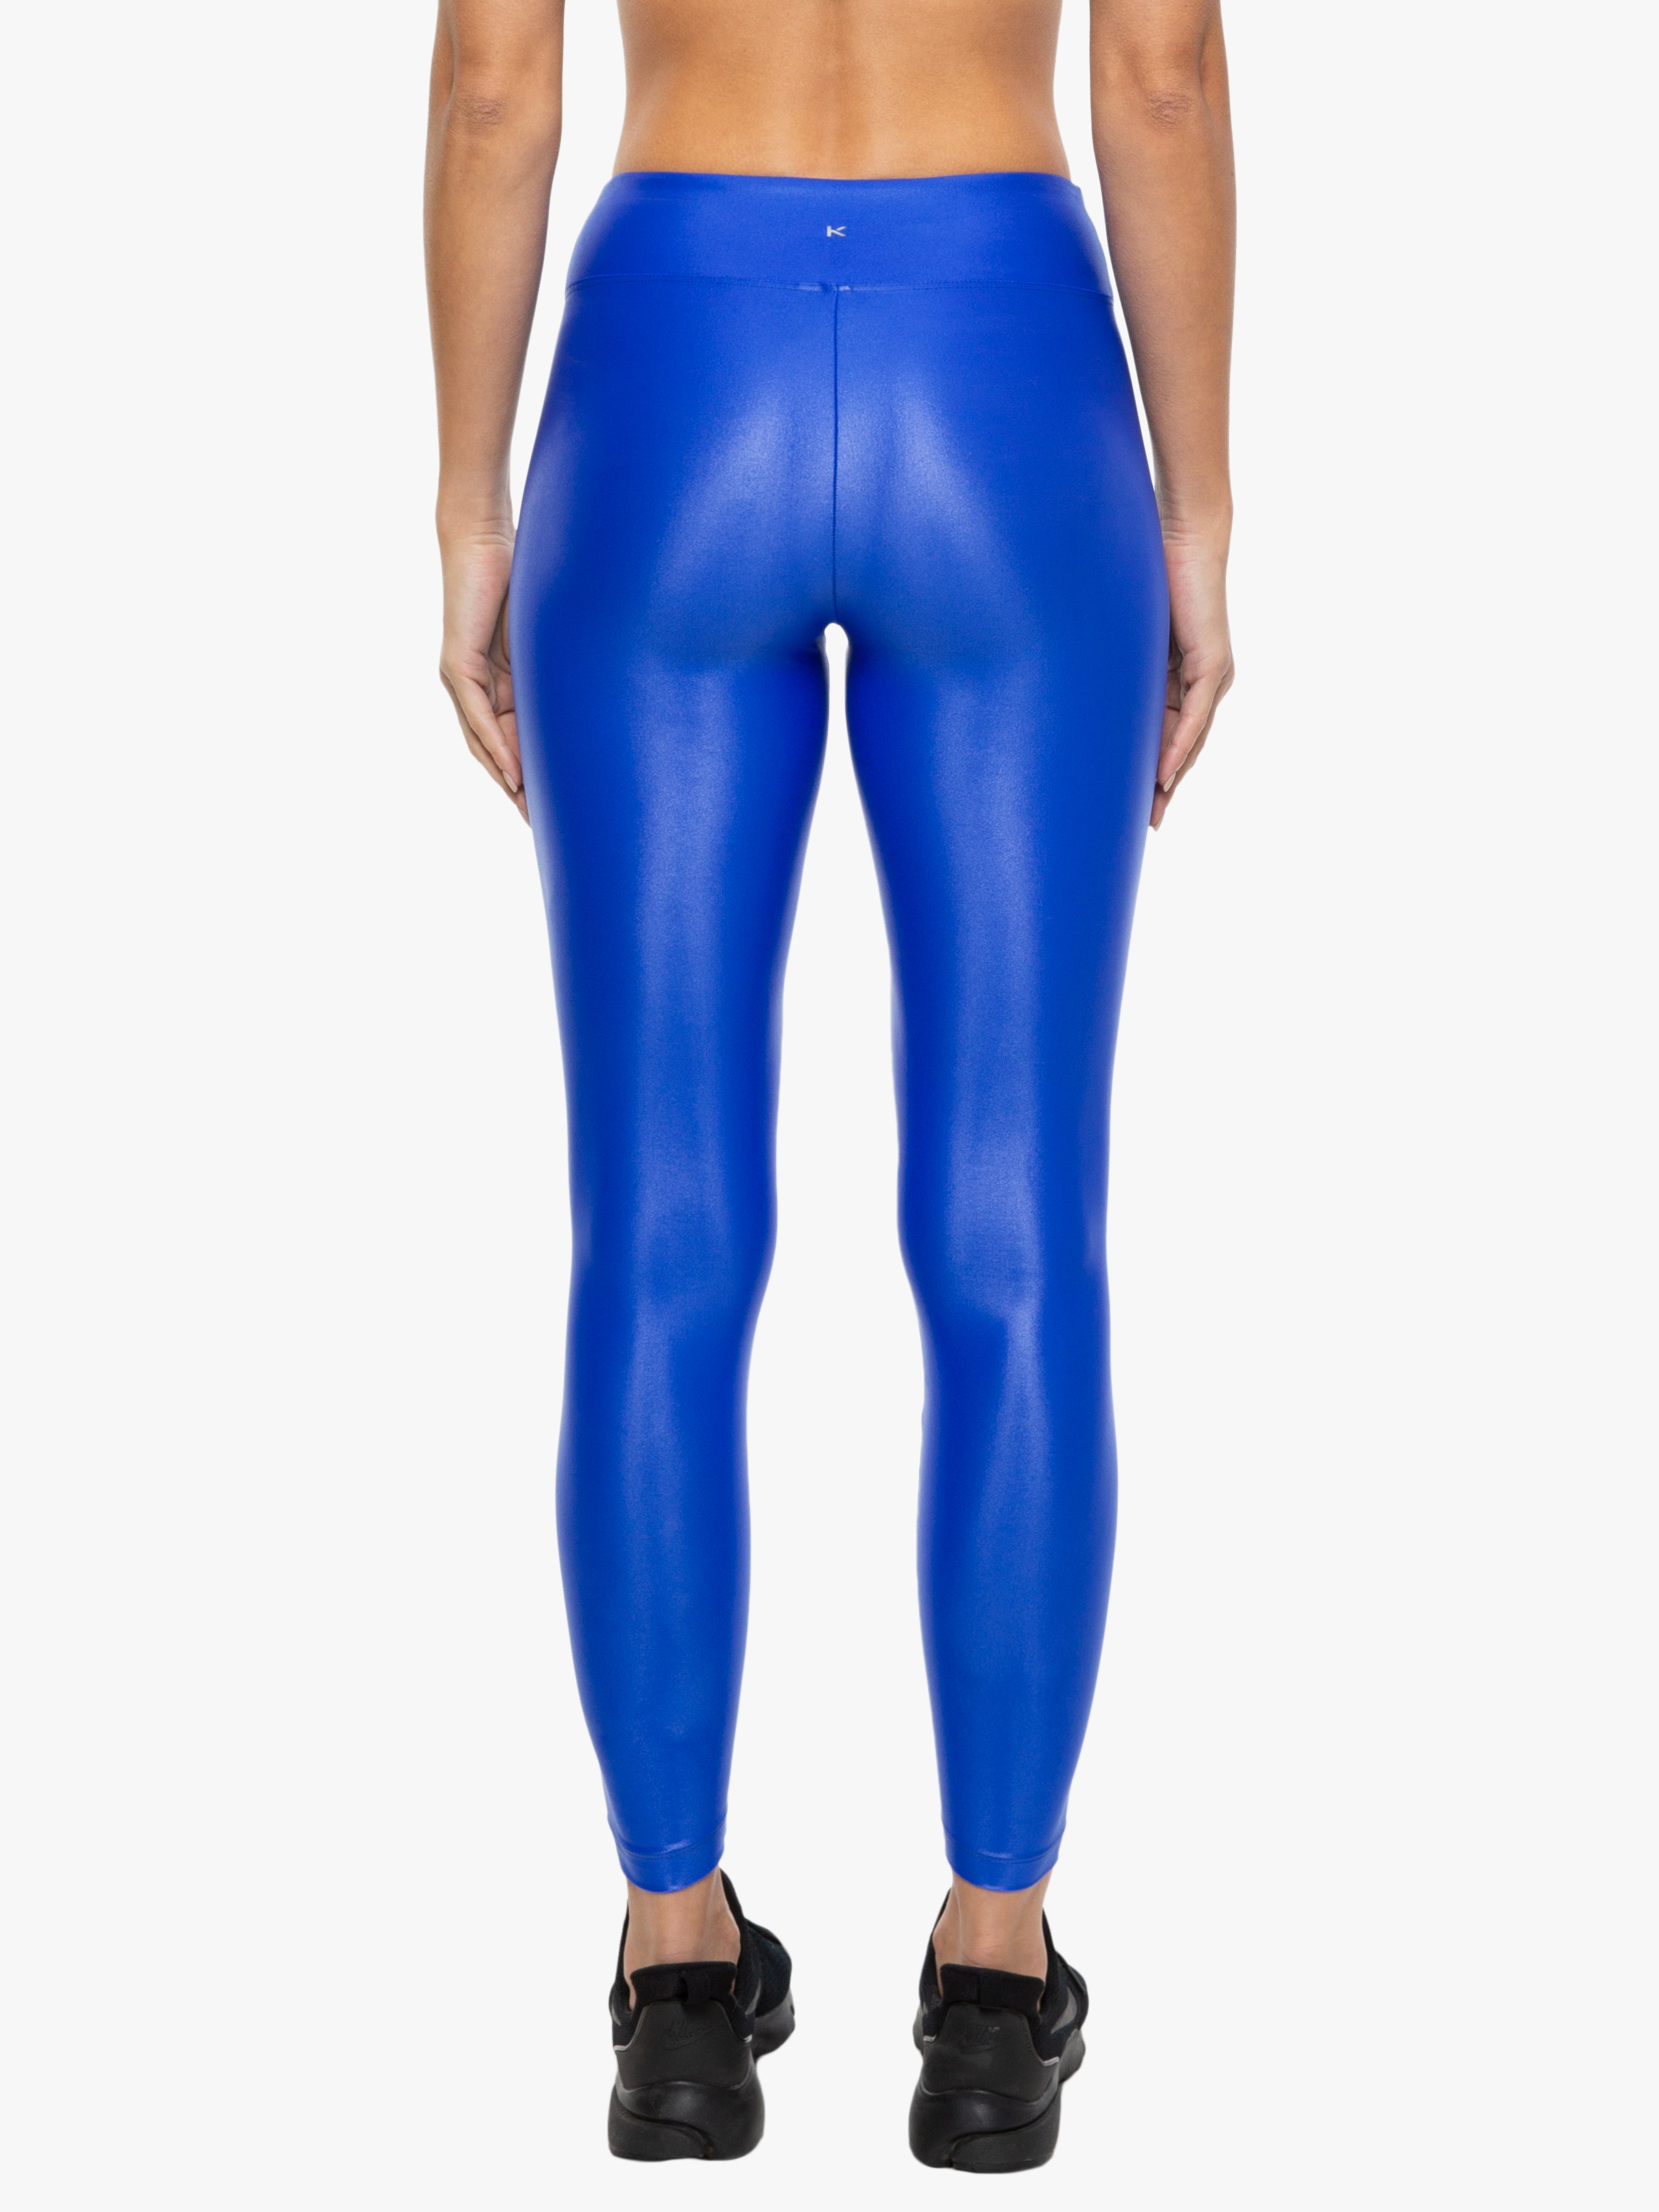 Lustrous High Rise Legging - Royal Blue